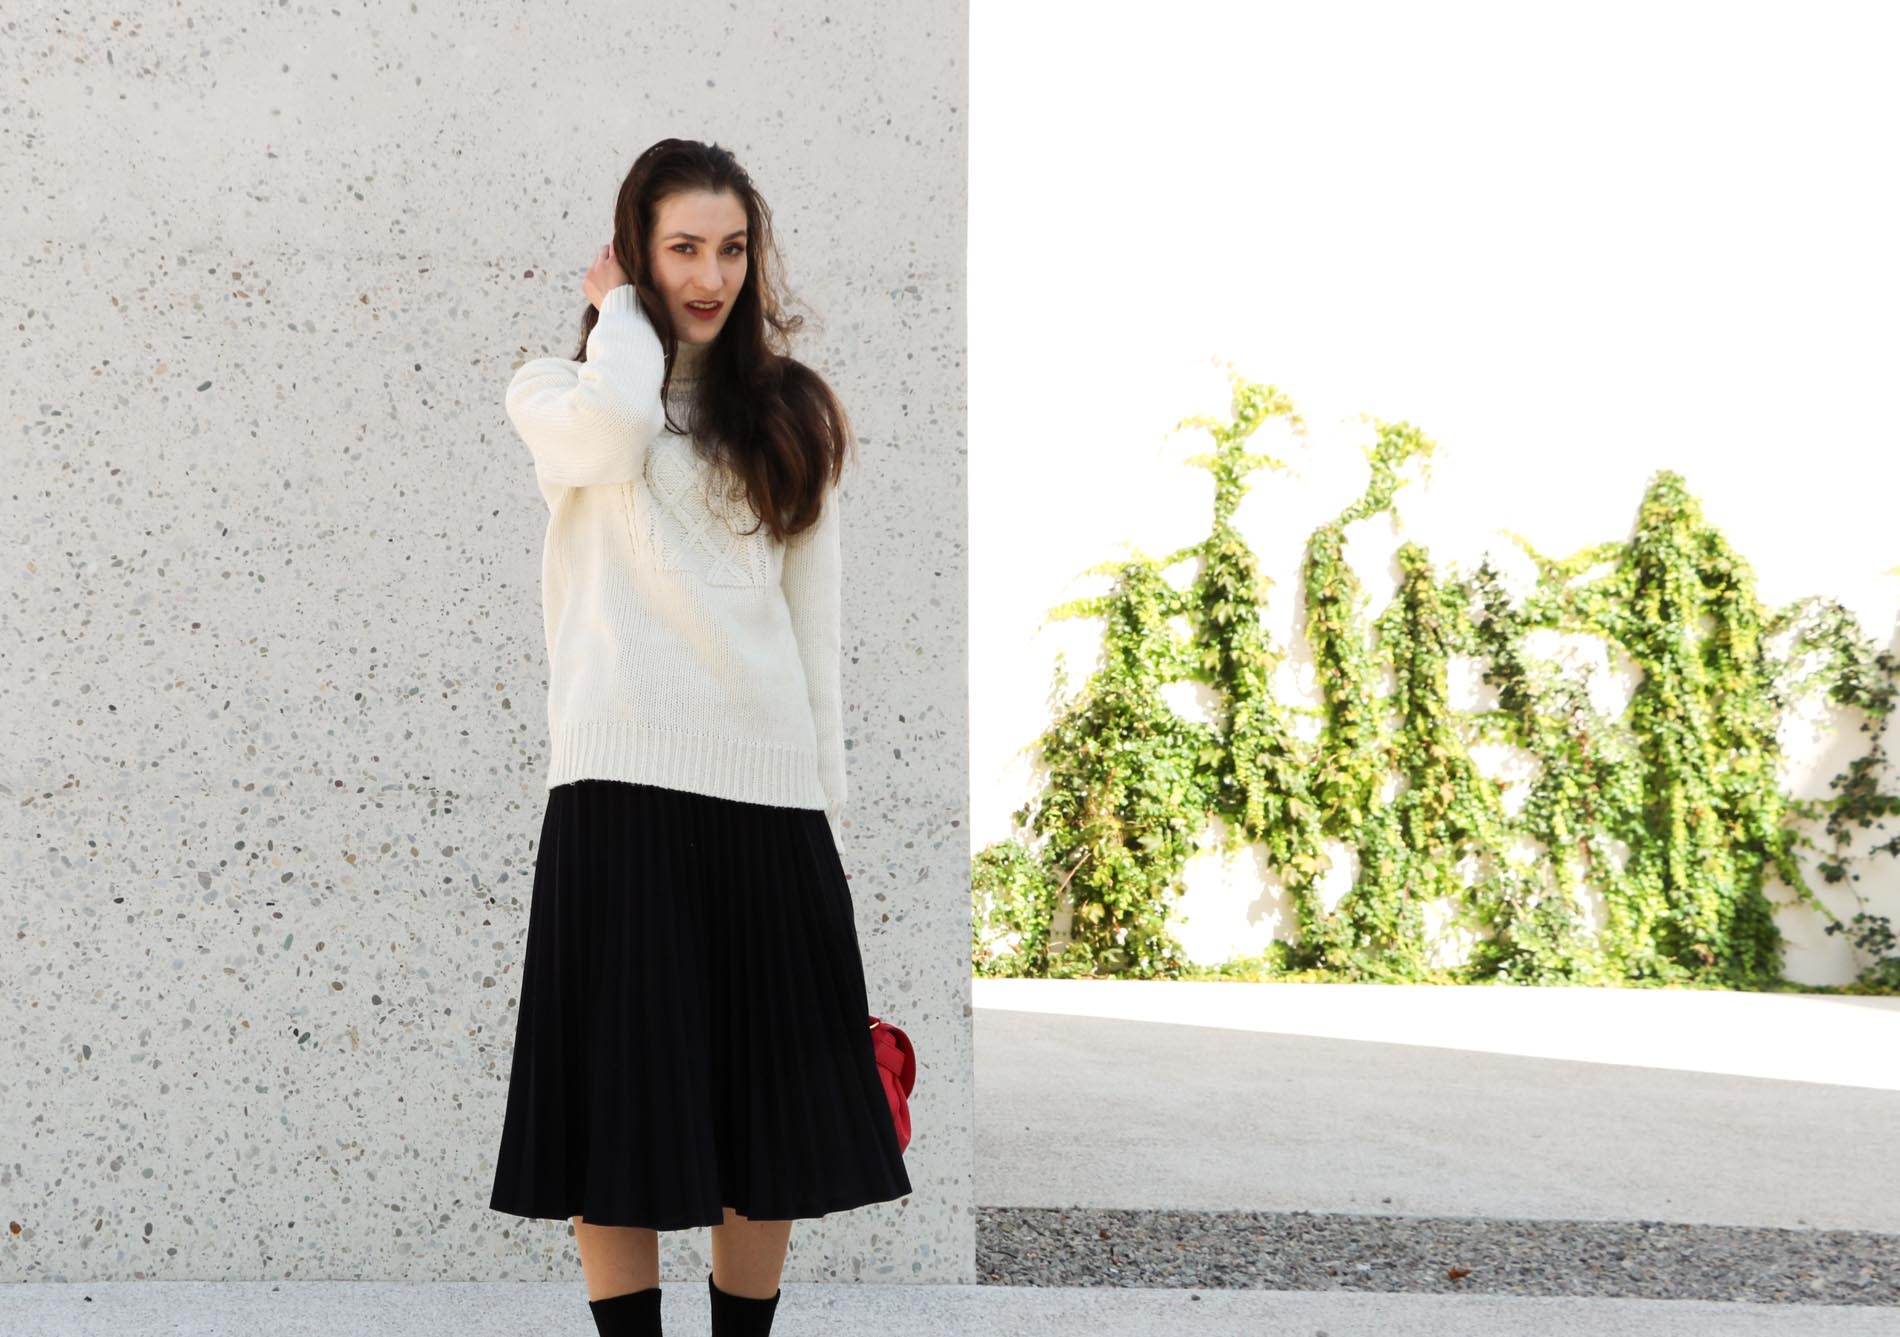 Fashion Blogger Veronika Lipar of Brunette from Wall Street wearing white oversized turtleneck sweater, black midi skirt with pleats, pink top handle bag from See by Chloe and black sock boots from Elena Iachi in winter